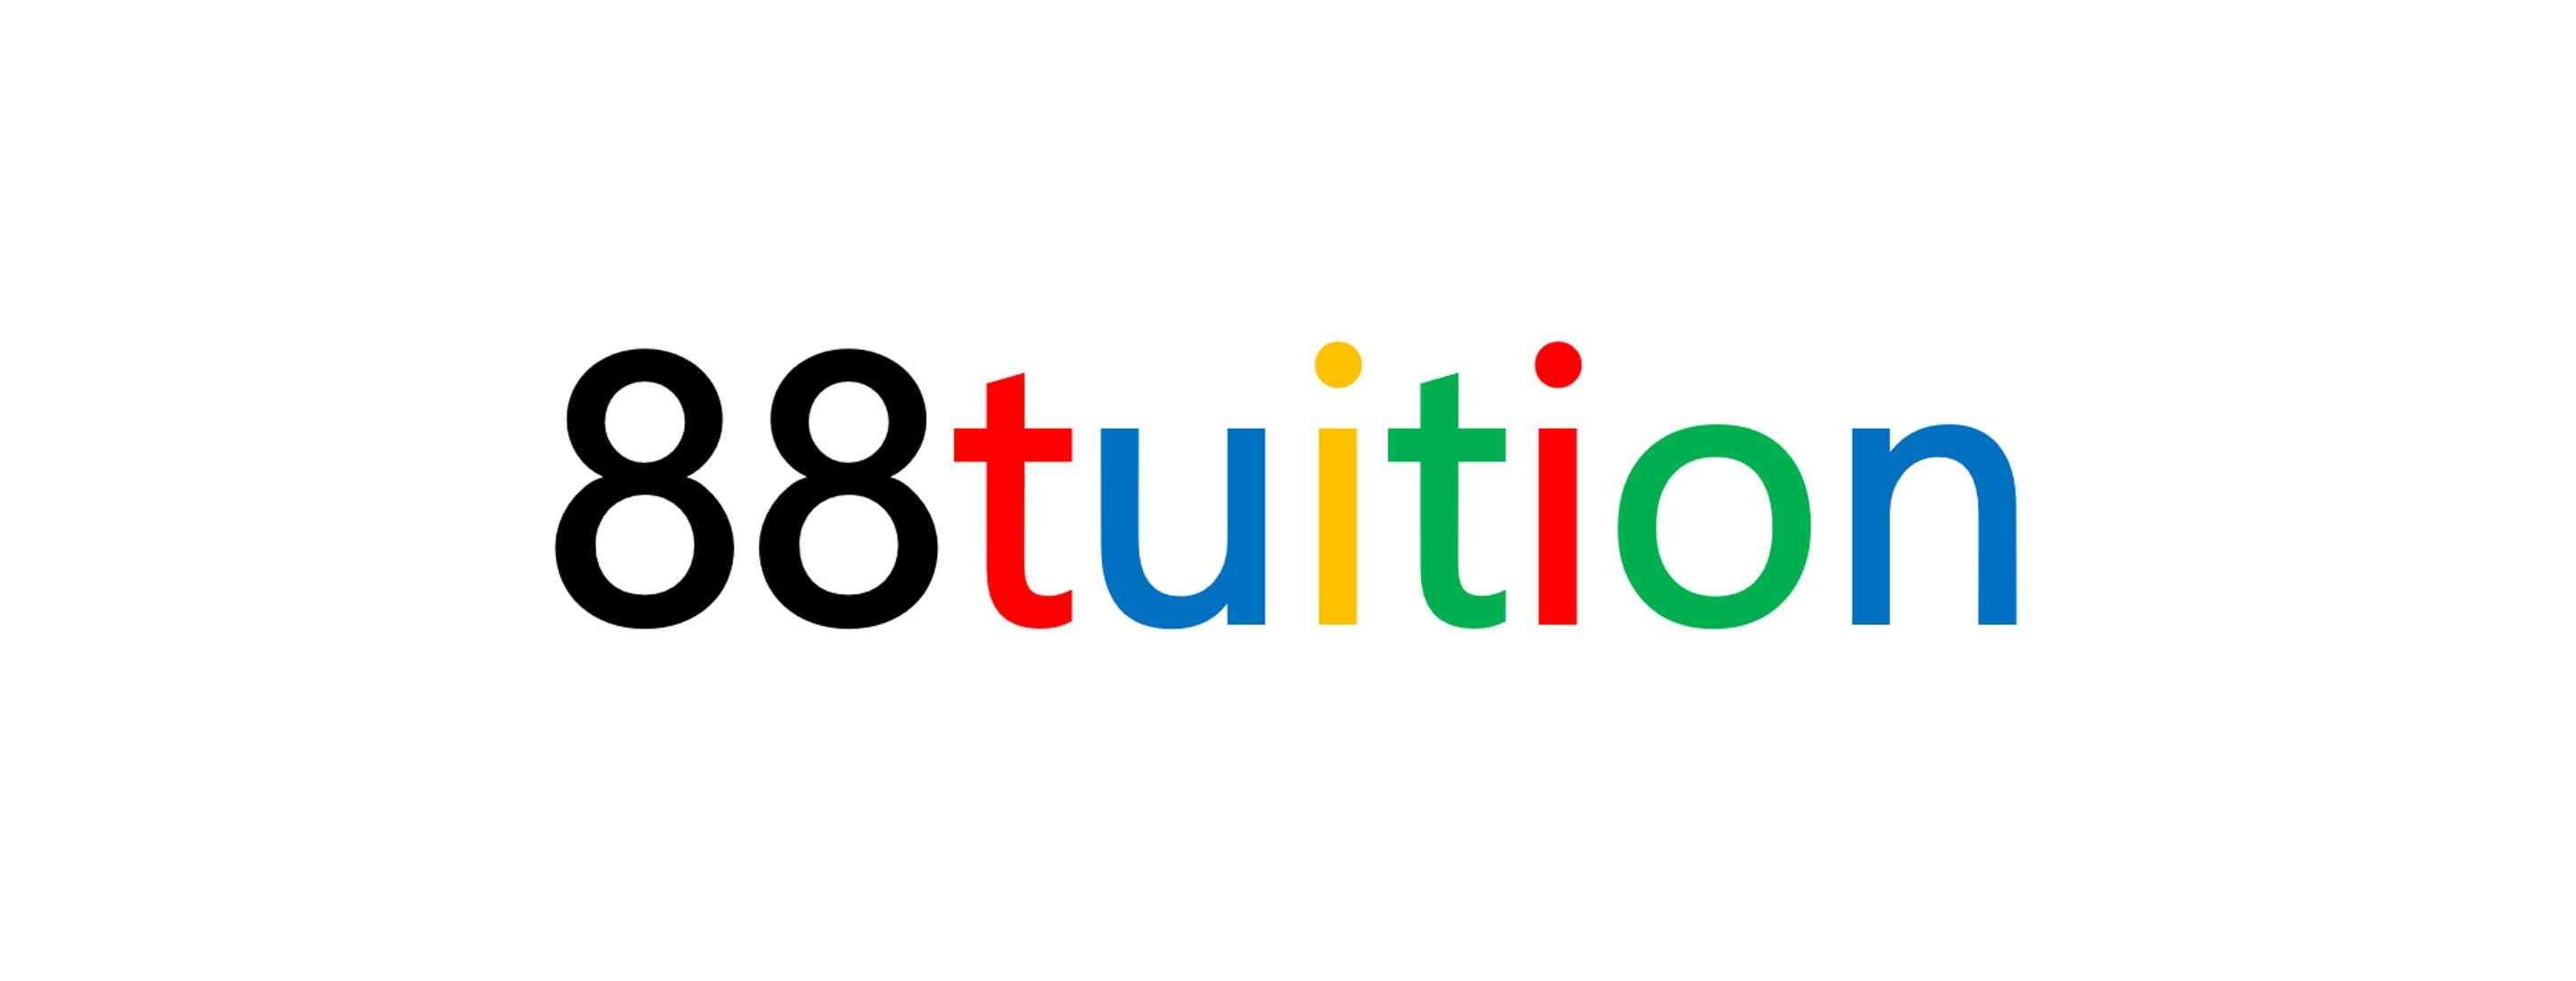 88tuition careers and current employee profiles | find referrals | linkedin